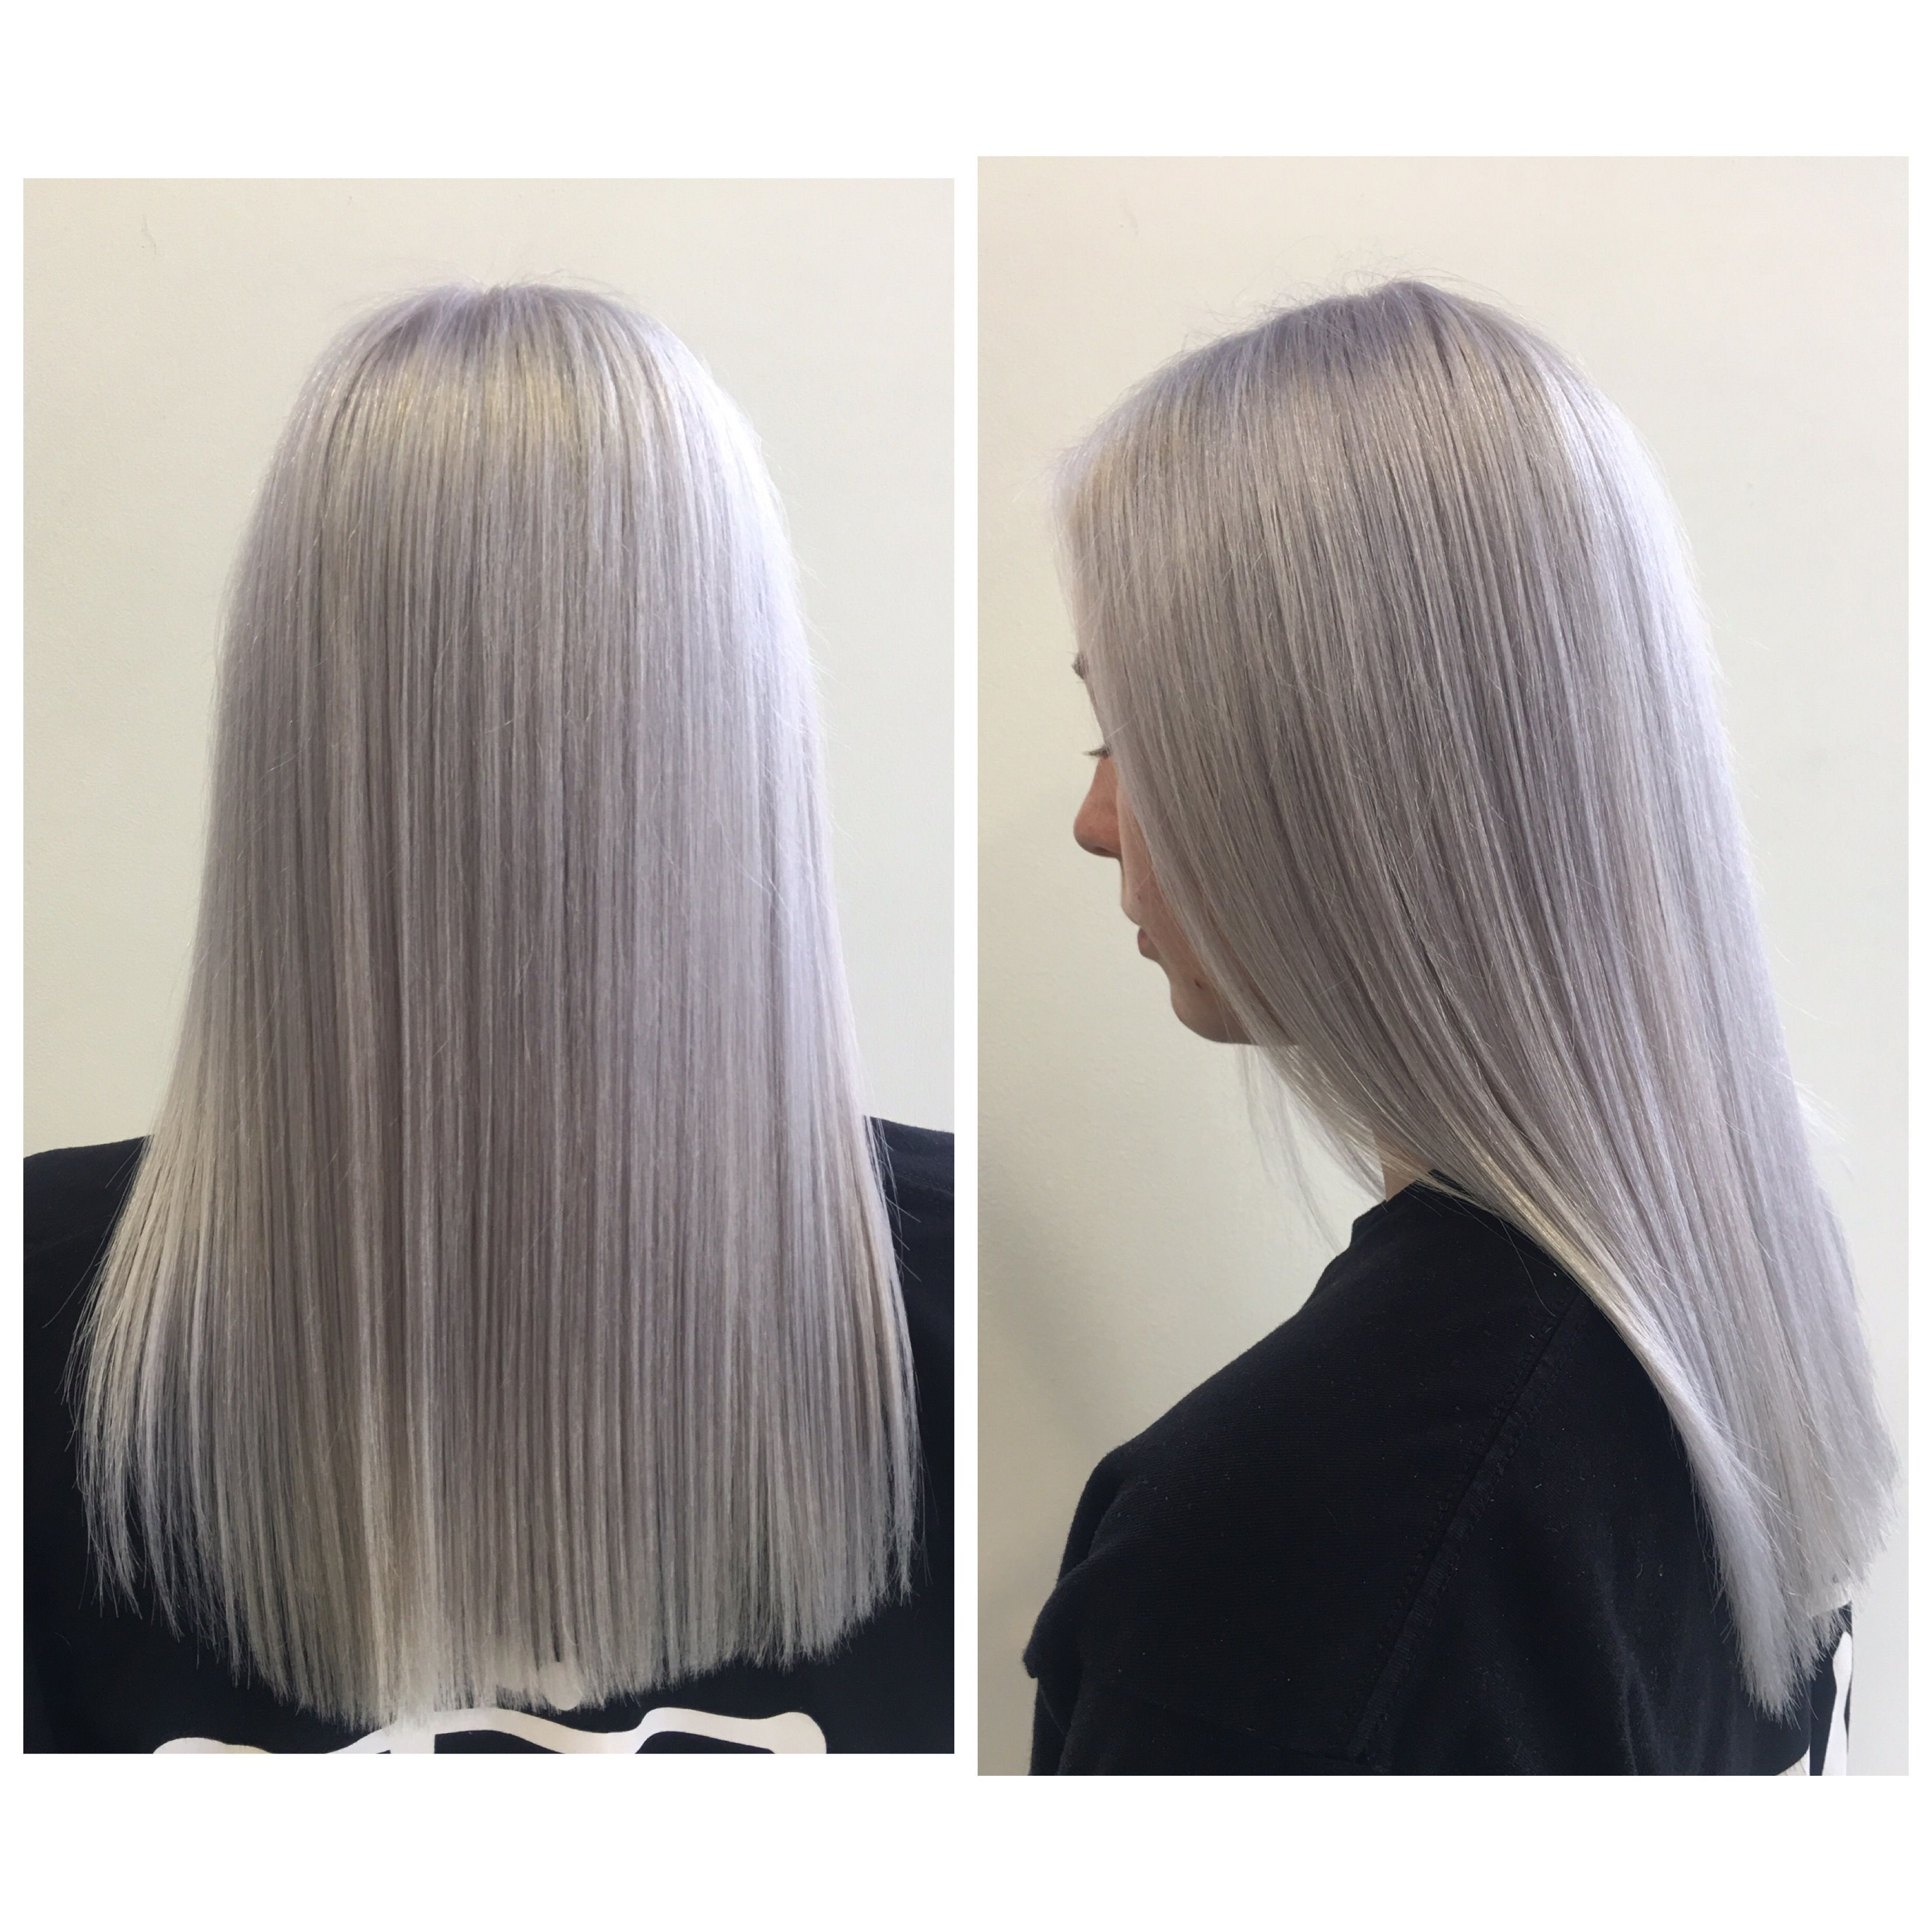 2020 New Gray Hair Wigs For African American Women Washing Synthetic Wigs With Laundry Detergent Gray Hair 2019 Lace Front Wigs With Baby Hair Hair Rinses For Grey Hair A List Wigs